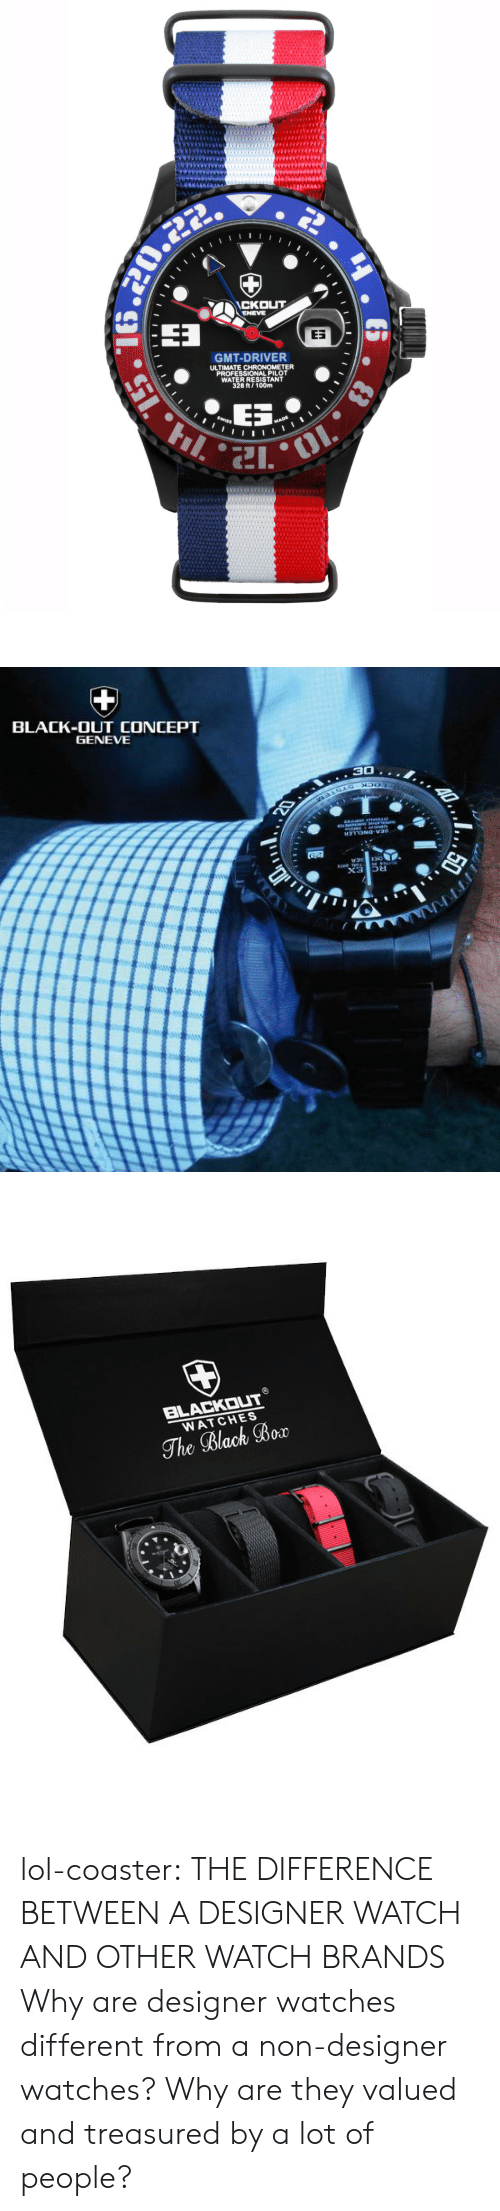 Lol, Tumblr, and Black: CKOUT  ENEVE  ES  GMT-DRIVER  ULTIMATE CHRONOMETER  PROFESSIONAL PILOT  WATER RESISTANT  328 ft/100m   BLACK-OUT CONCEPT  GENEVE  30..   BLACKOUT  WATCHES  The Black Bor lol-coaster:   THE DIFFERENCE BETWEEN A DESIGNER WATCH AND OTHER WATCH BRANDS  Why are designer watches different from a non-designer watches? Why are they valued and treasured by a lot of people?